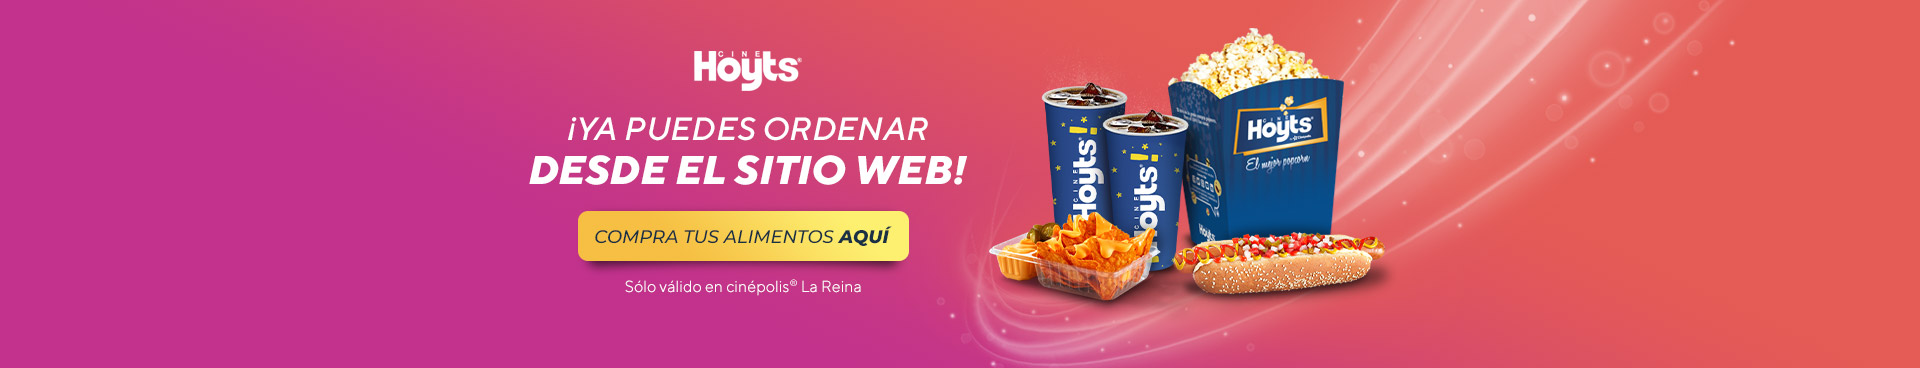 https://compra.cinehoyts.cl/alimentos